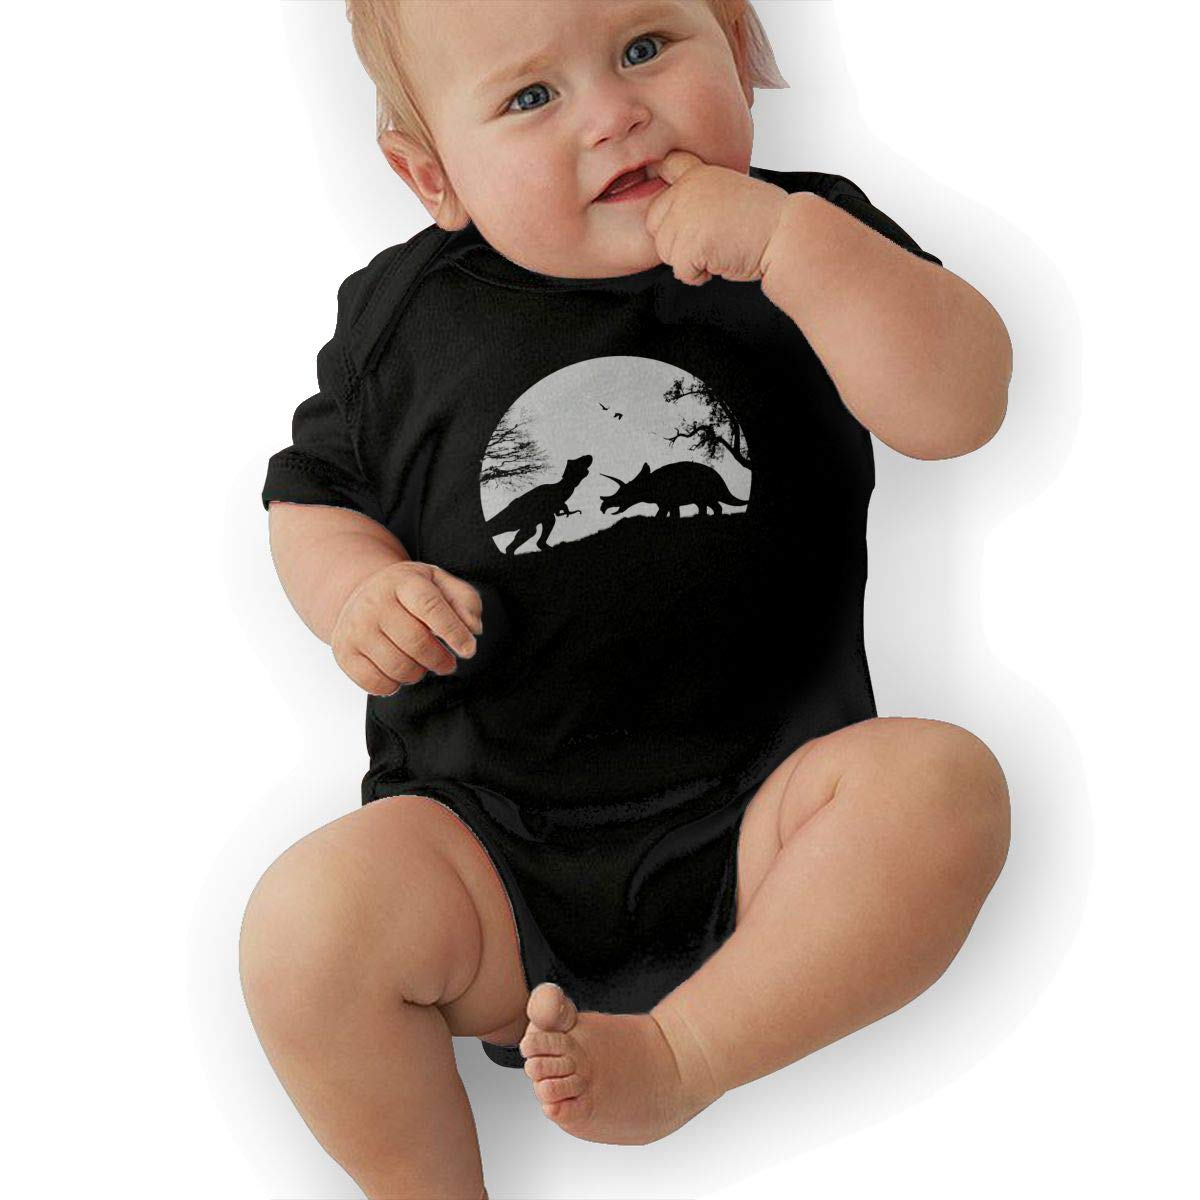 Short Sleeve Cotton Rompers for Baby Girls Boys Fashion Retro Style T Rex Silhouette Jumpsuit